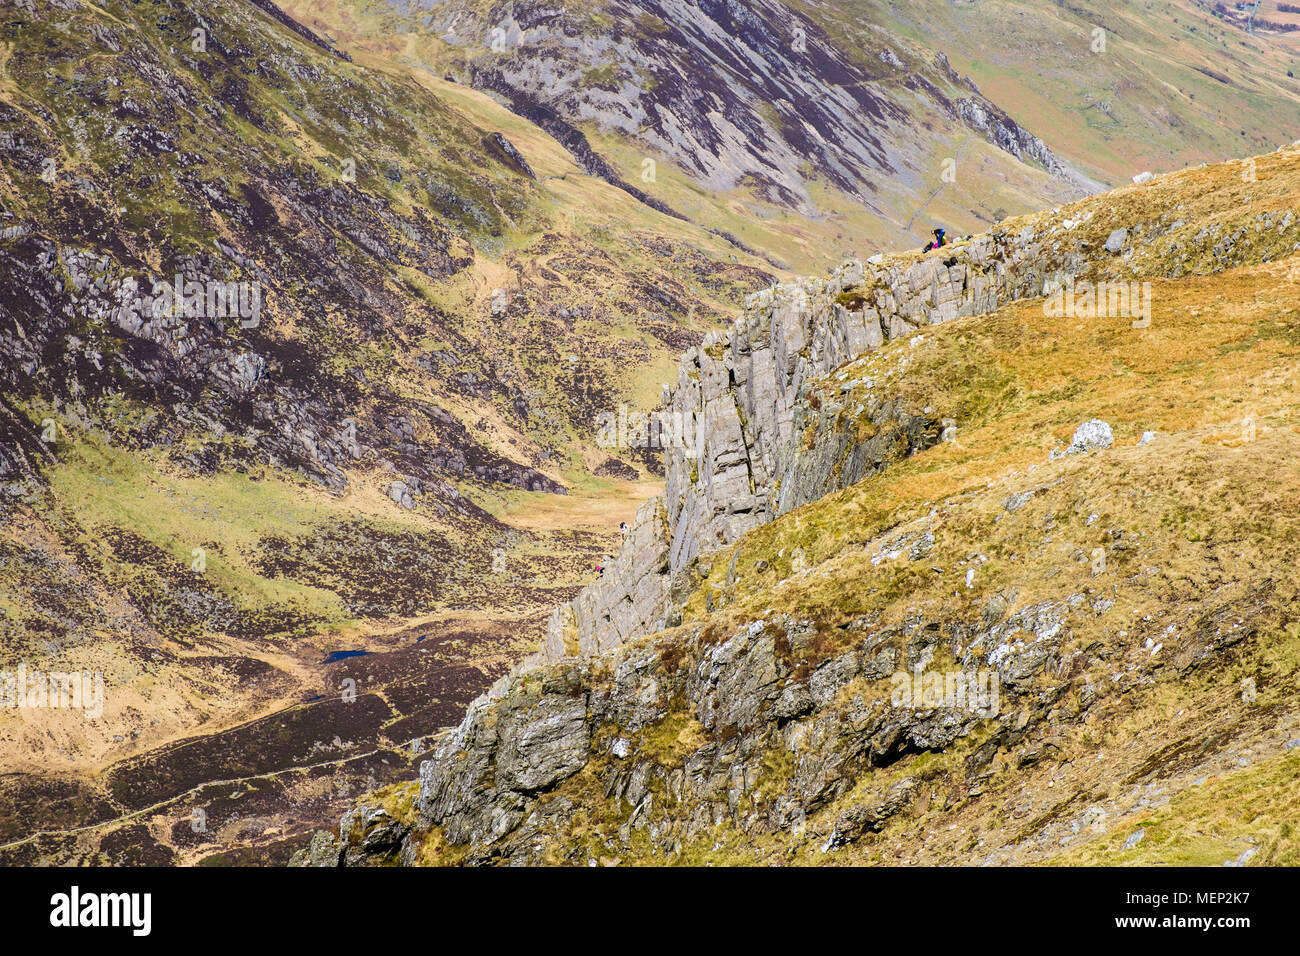 Cneifion Arete rock scramble on Y Gribin ridge with climbers at top in mountains of Snowdonia National Park. Ogwen, Conwy, Wales, UK, Britain - Stock Image